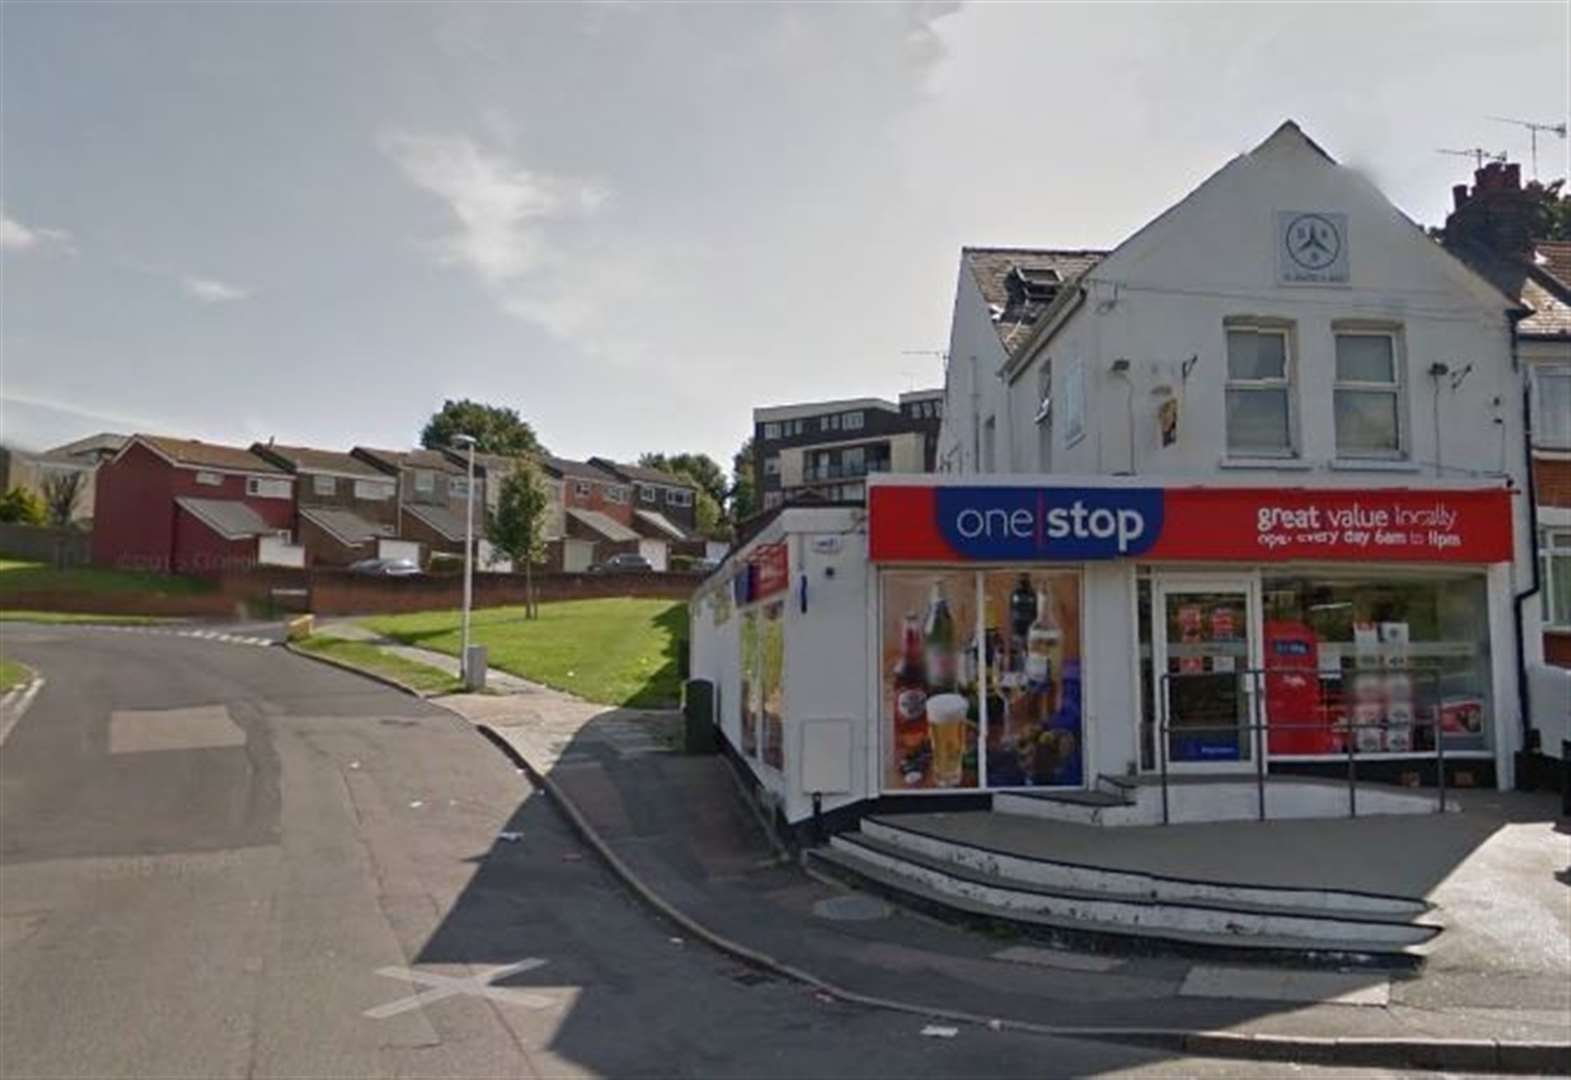 Armed robbery at corner shop